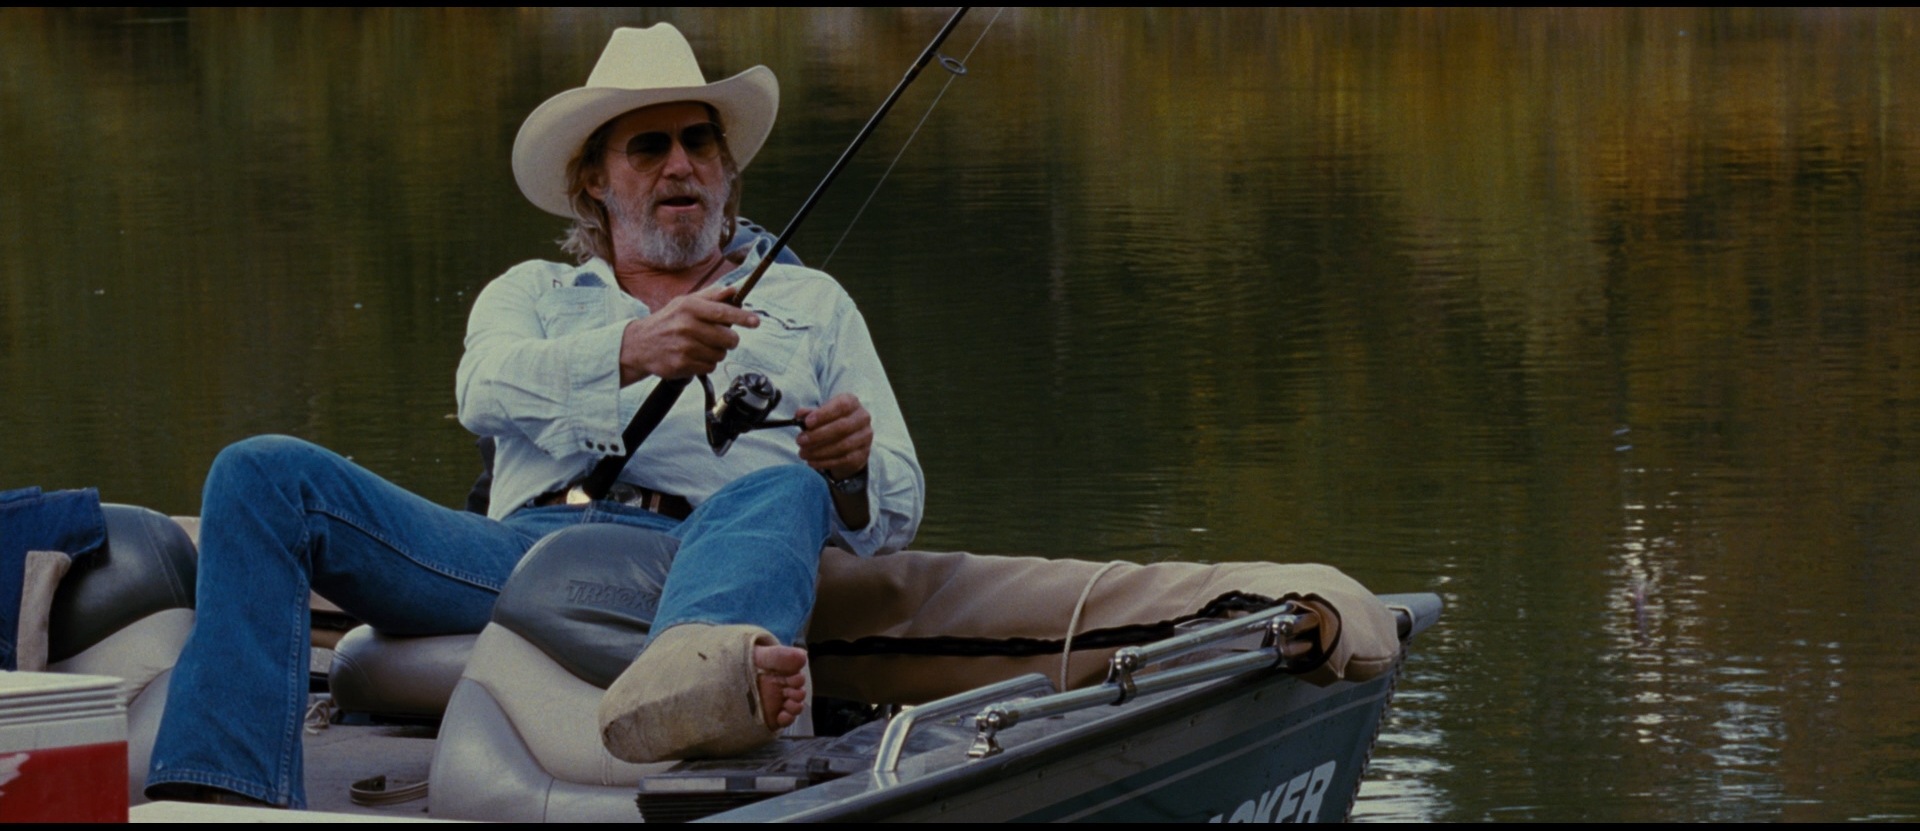 Jeff Bridges Wallpaper 13   1920 X 831 stmednet 1920x831